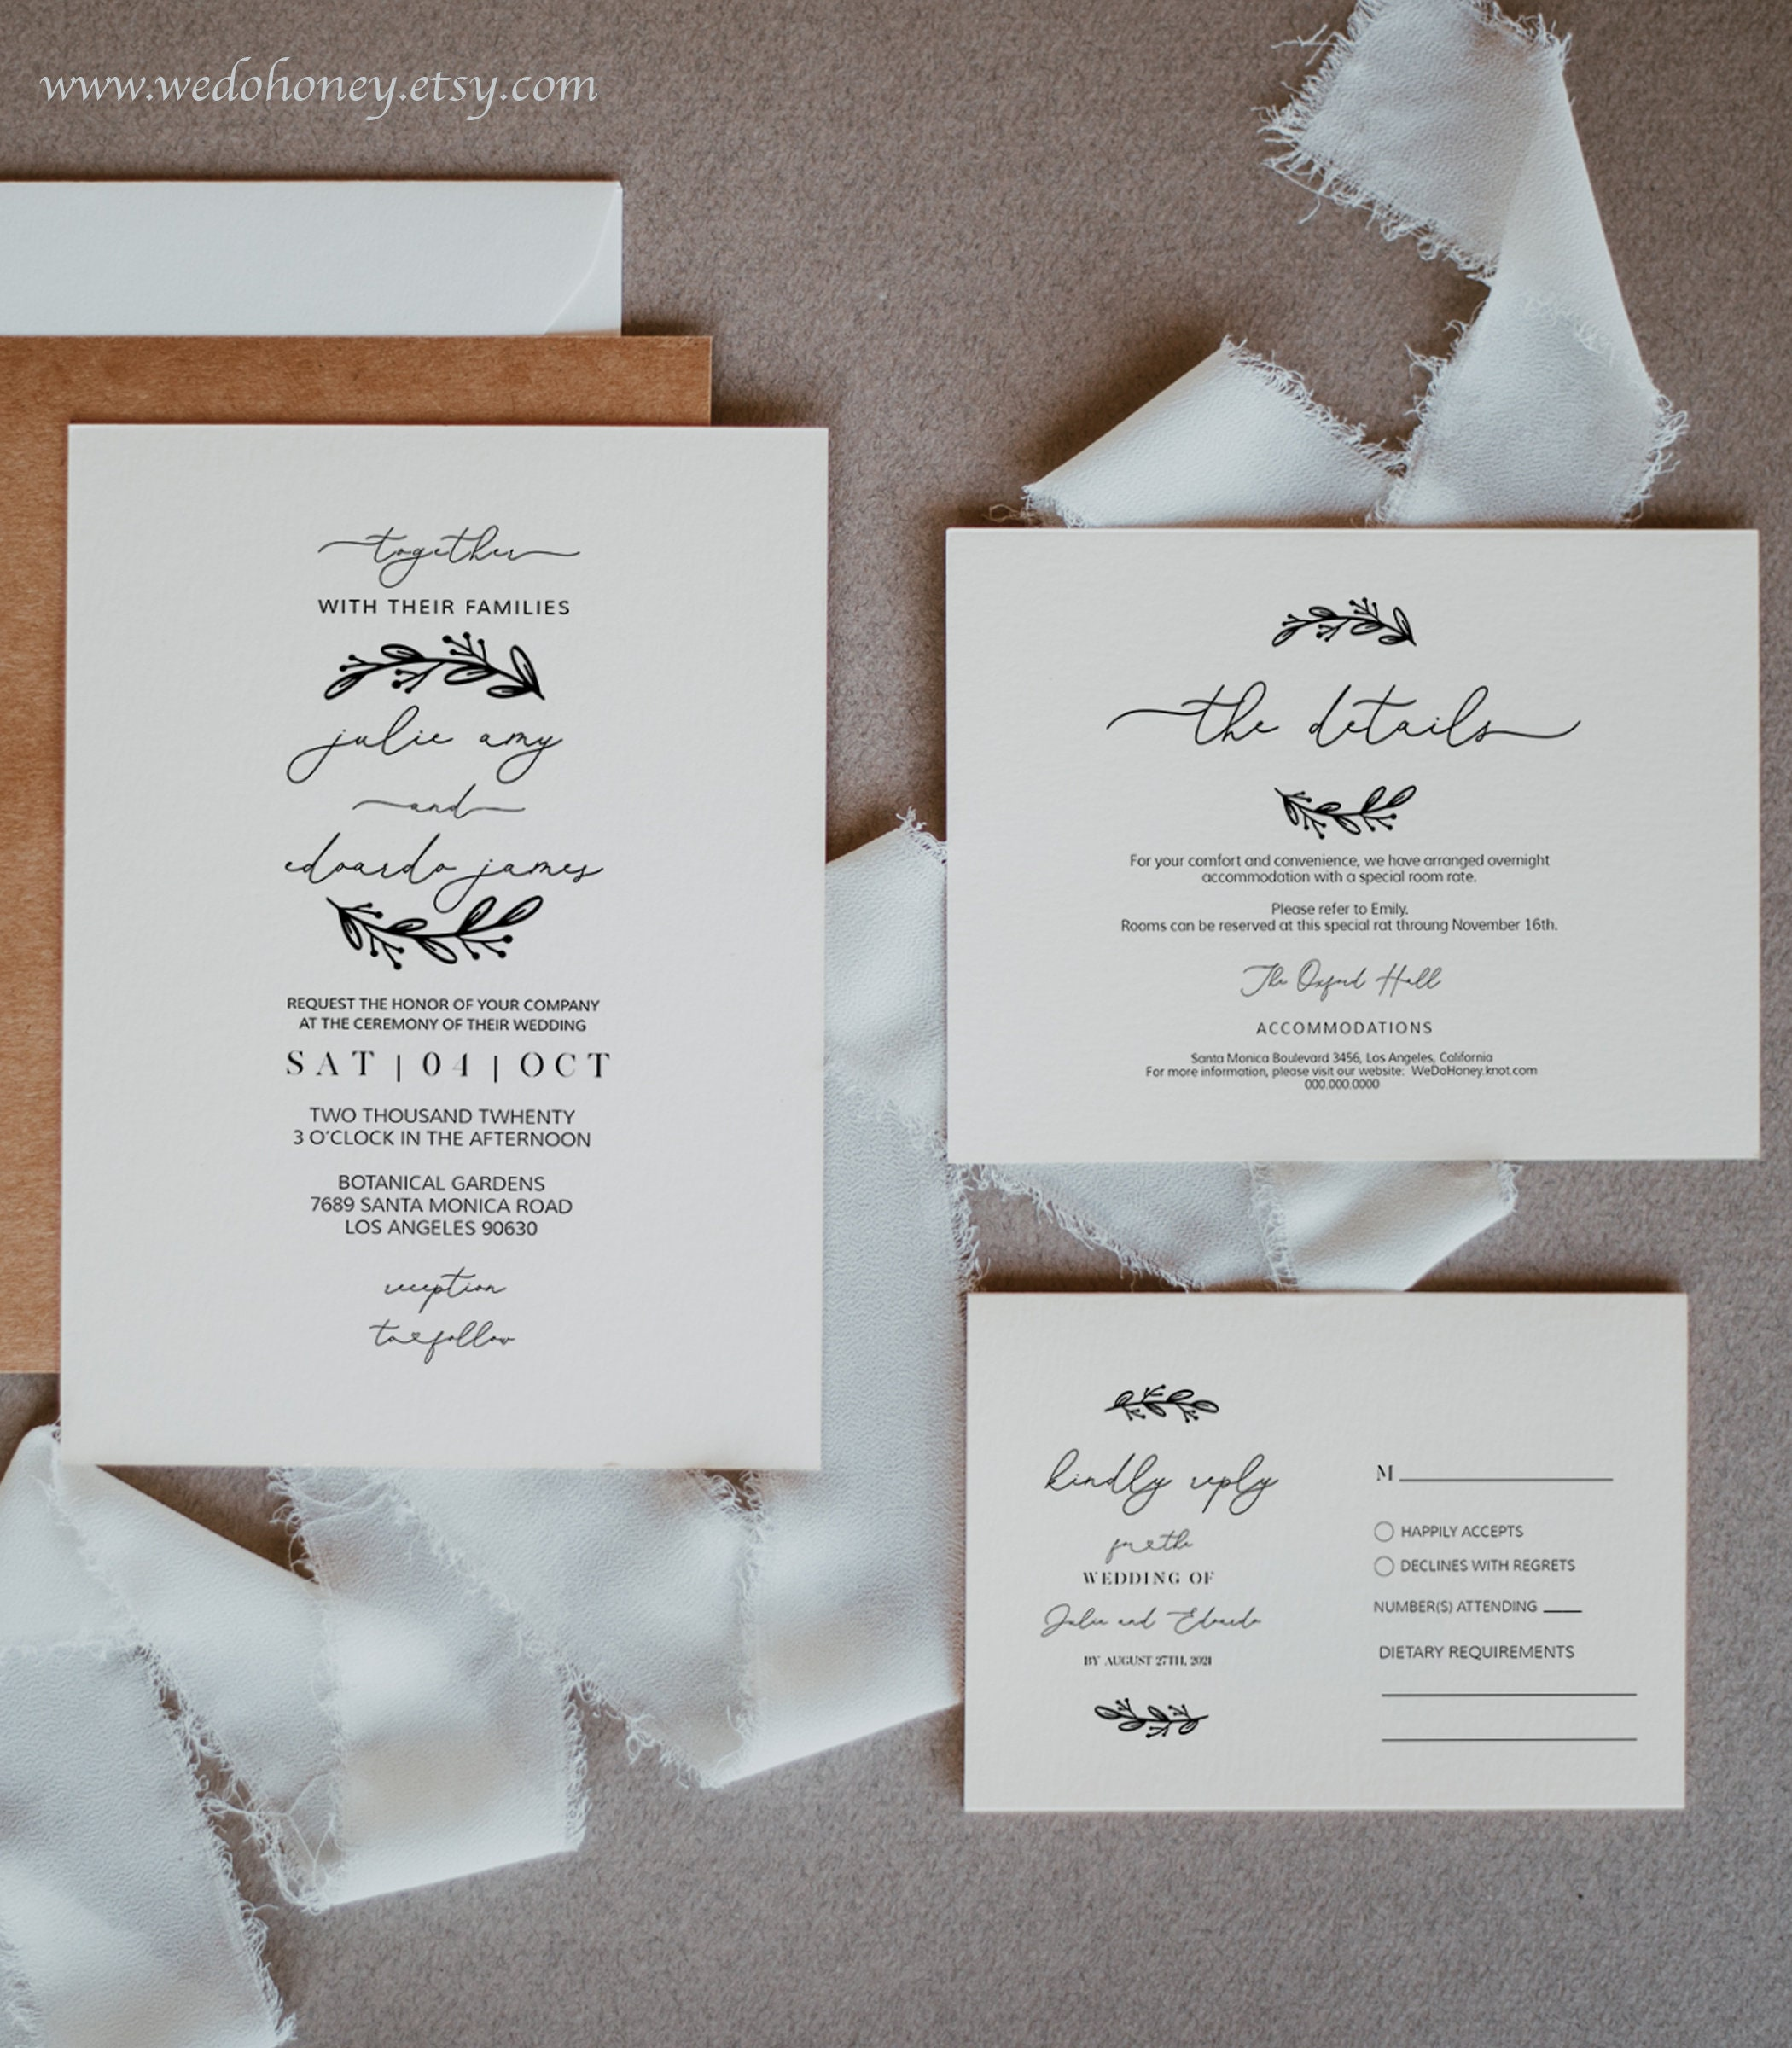 Editable Wedding Suite Invitation Template, Heart Calligraphy, Simple and Rustic Ceremony, Fully Editable Text with Corjl #096